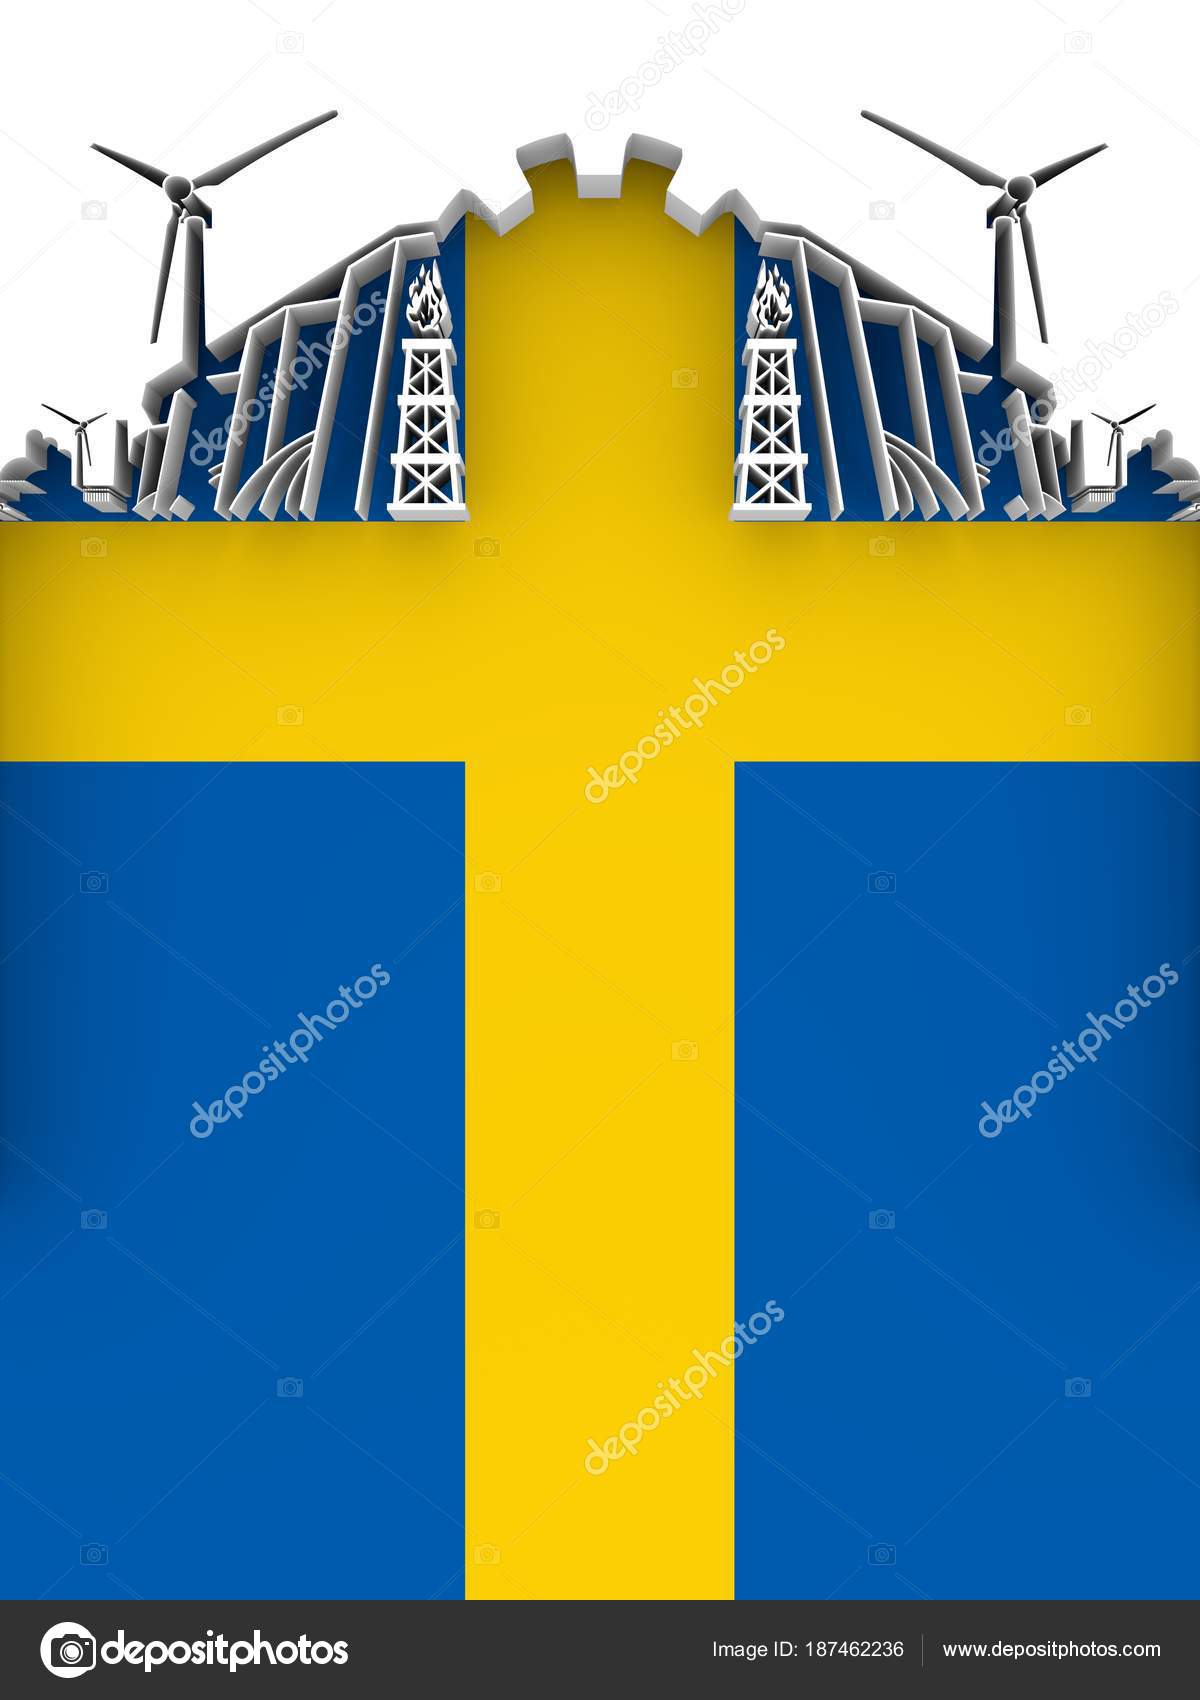 Energy and power stock photo jegasra 187462236 energy and power cutout silhouette sustainable energy generation and heavy industry flag of the sweden 3d illustration photo by jegasra biocorpaavc Gallery